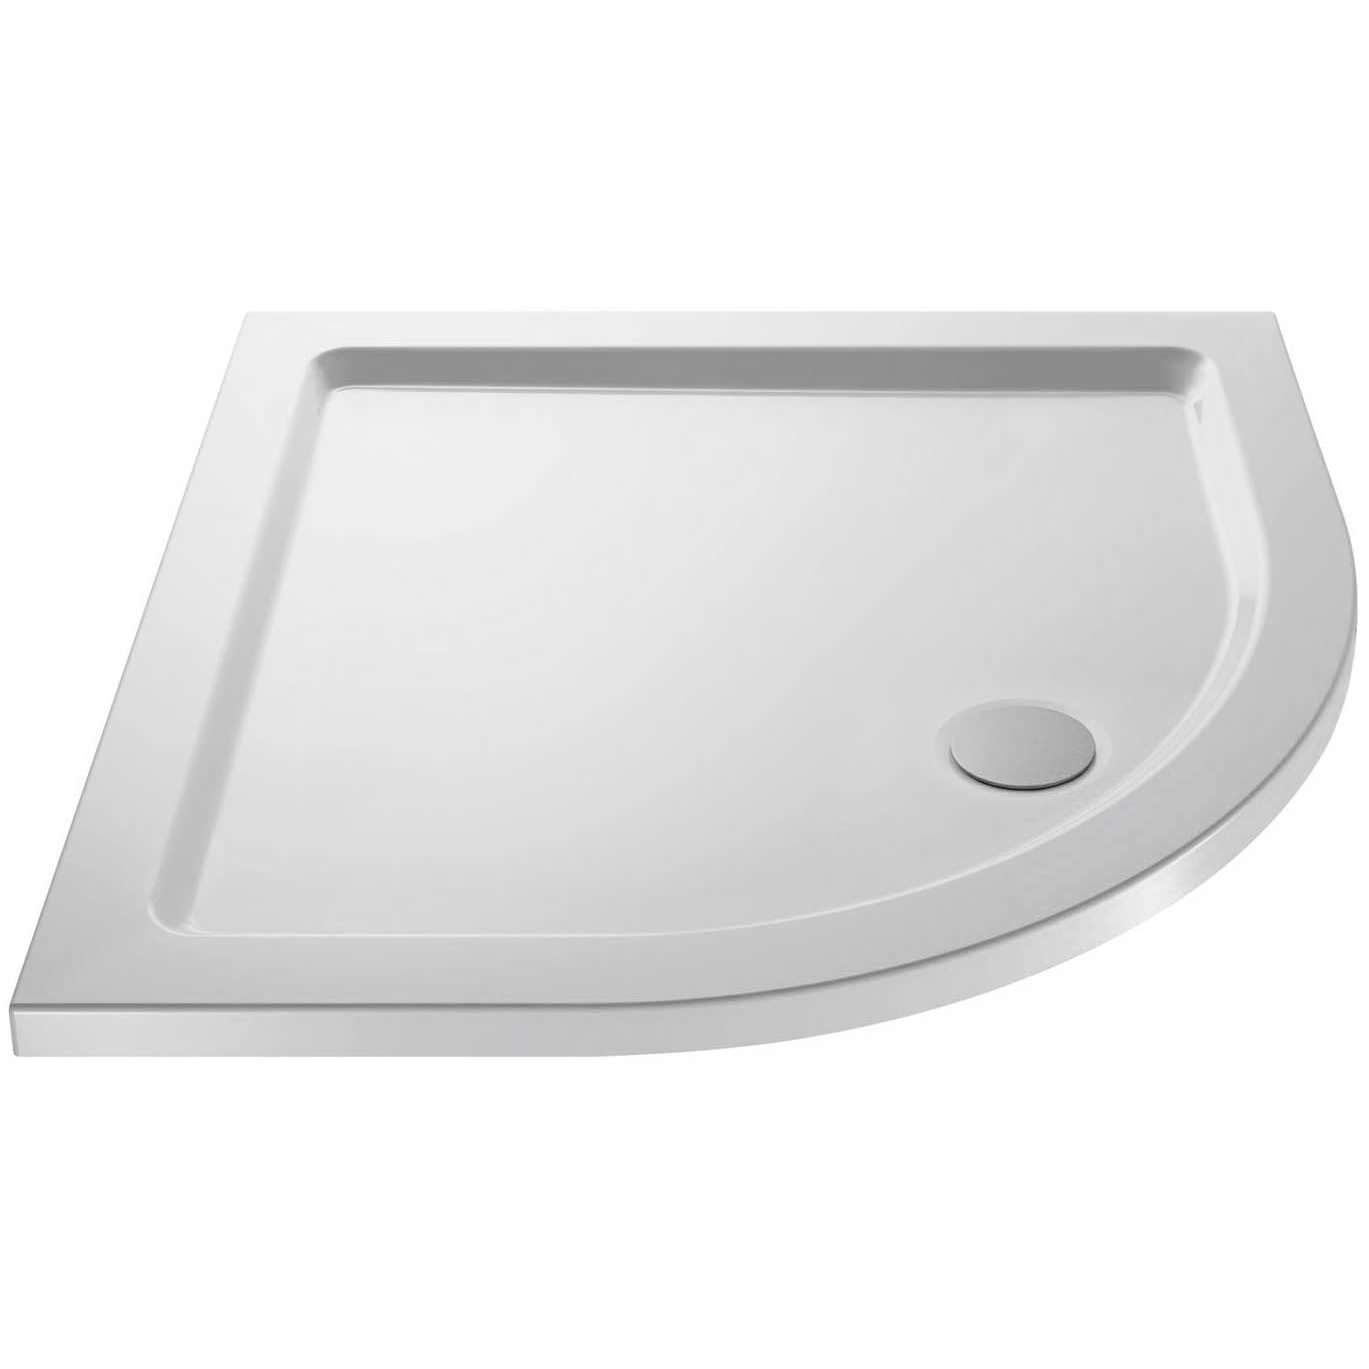 Shower Trays for Quadrant Shower Enclosures / Offset Trays Available